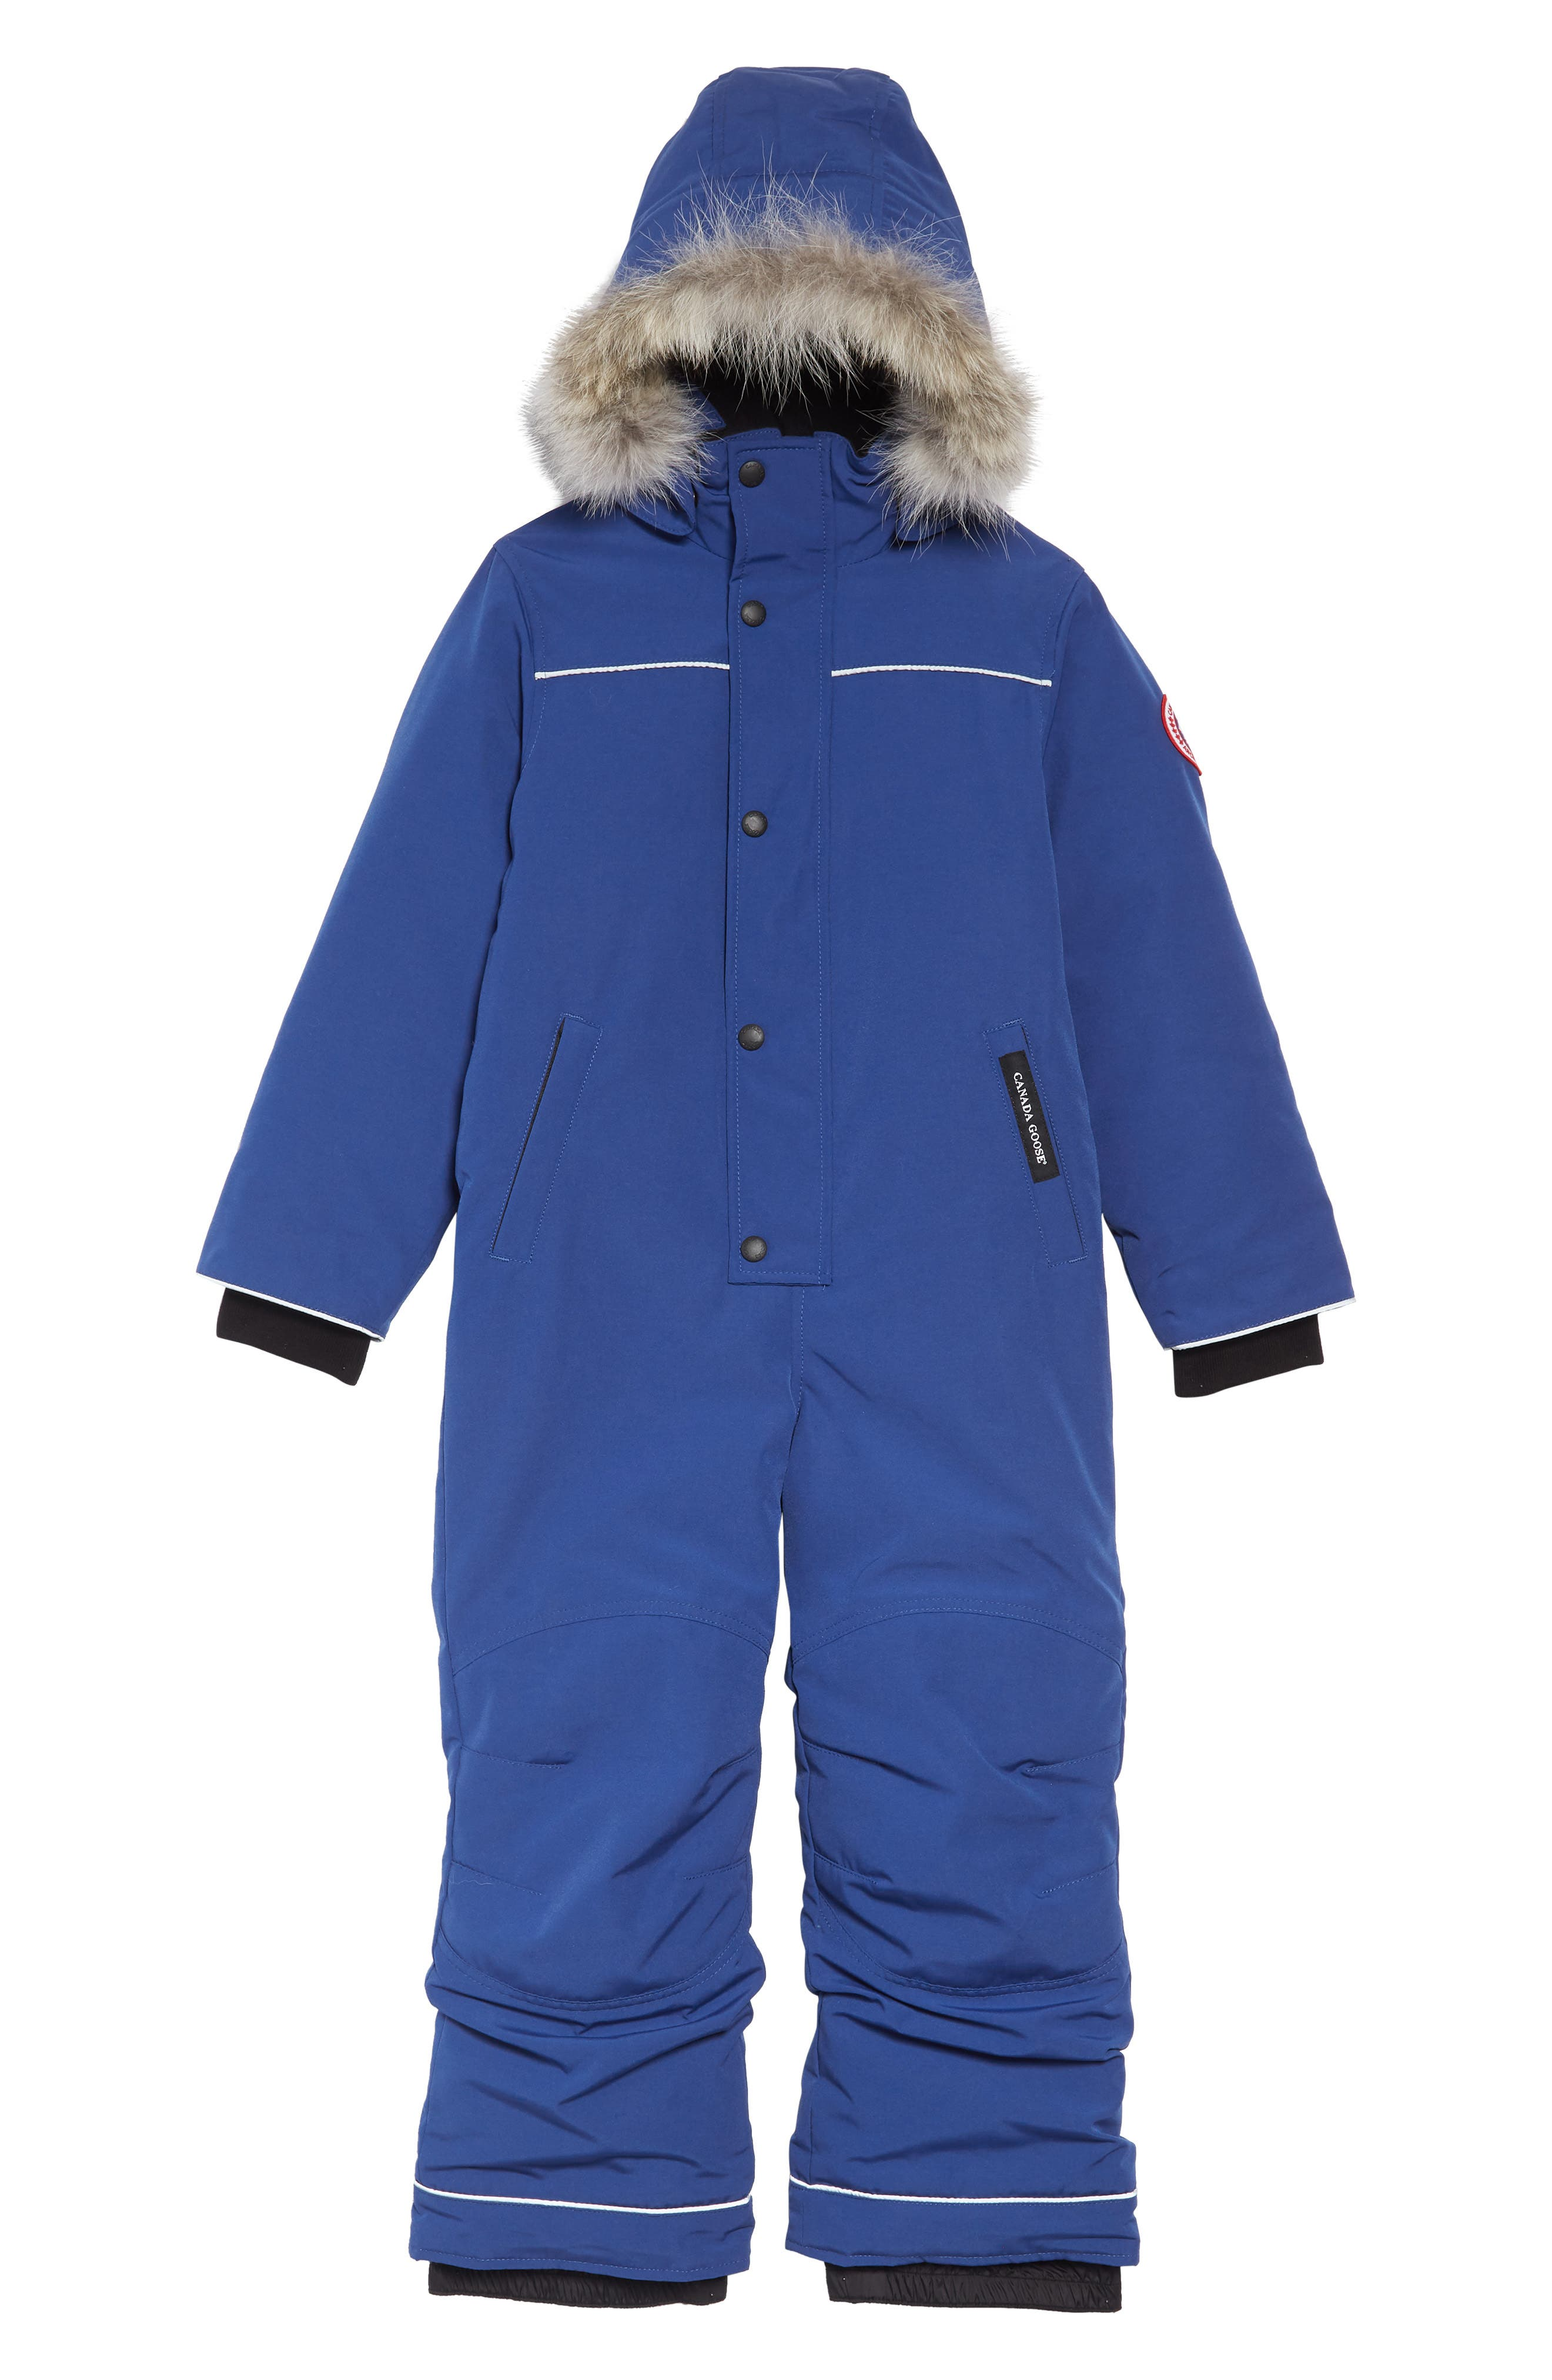 Baby Grizzly Snowsuit with Genuine Coyote Fur Trim,                         Main,                         color, PACIFIC BLUE